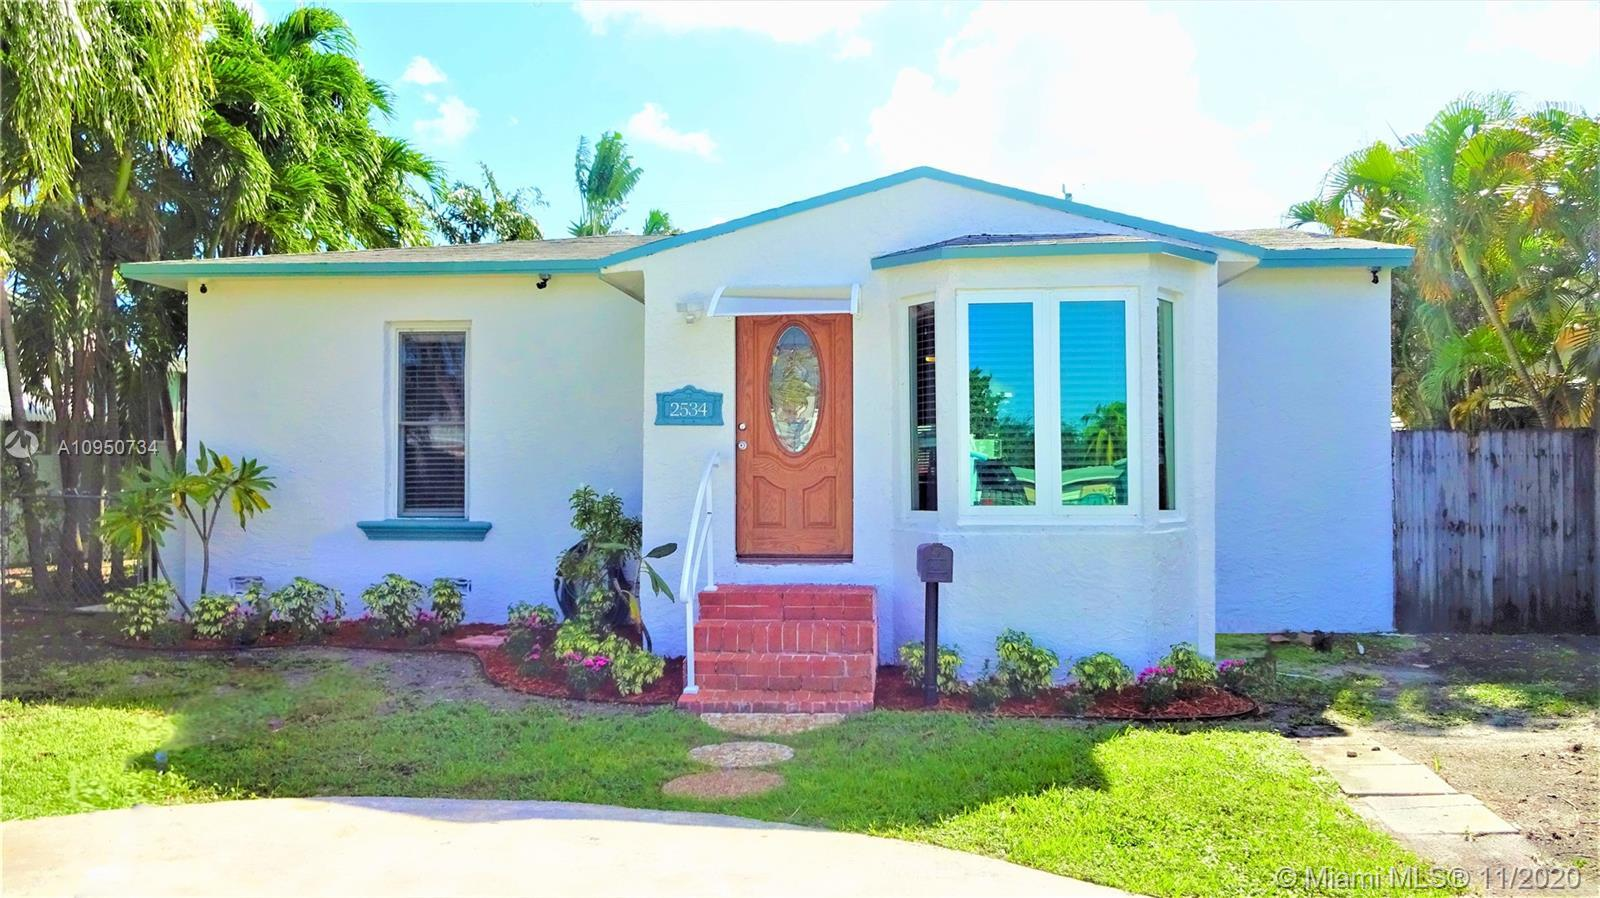 This gorgeous and cozy 2/1 pool home located in Hollywood is ready to move in! Just bring your furni